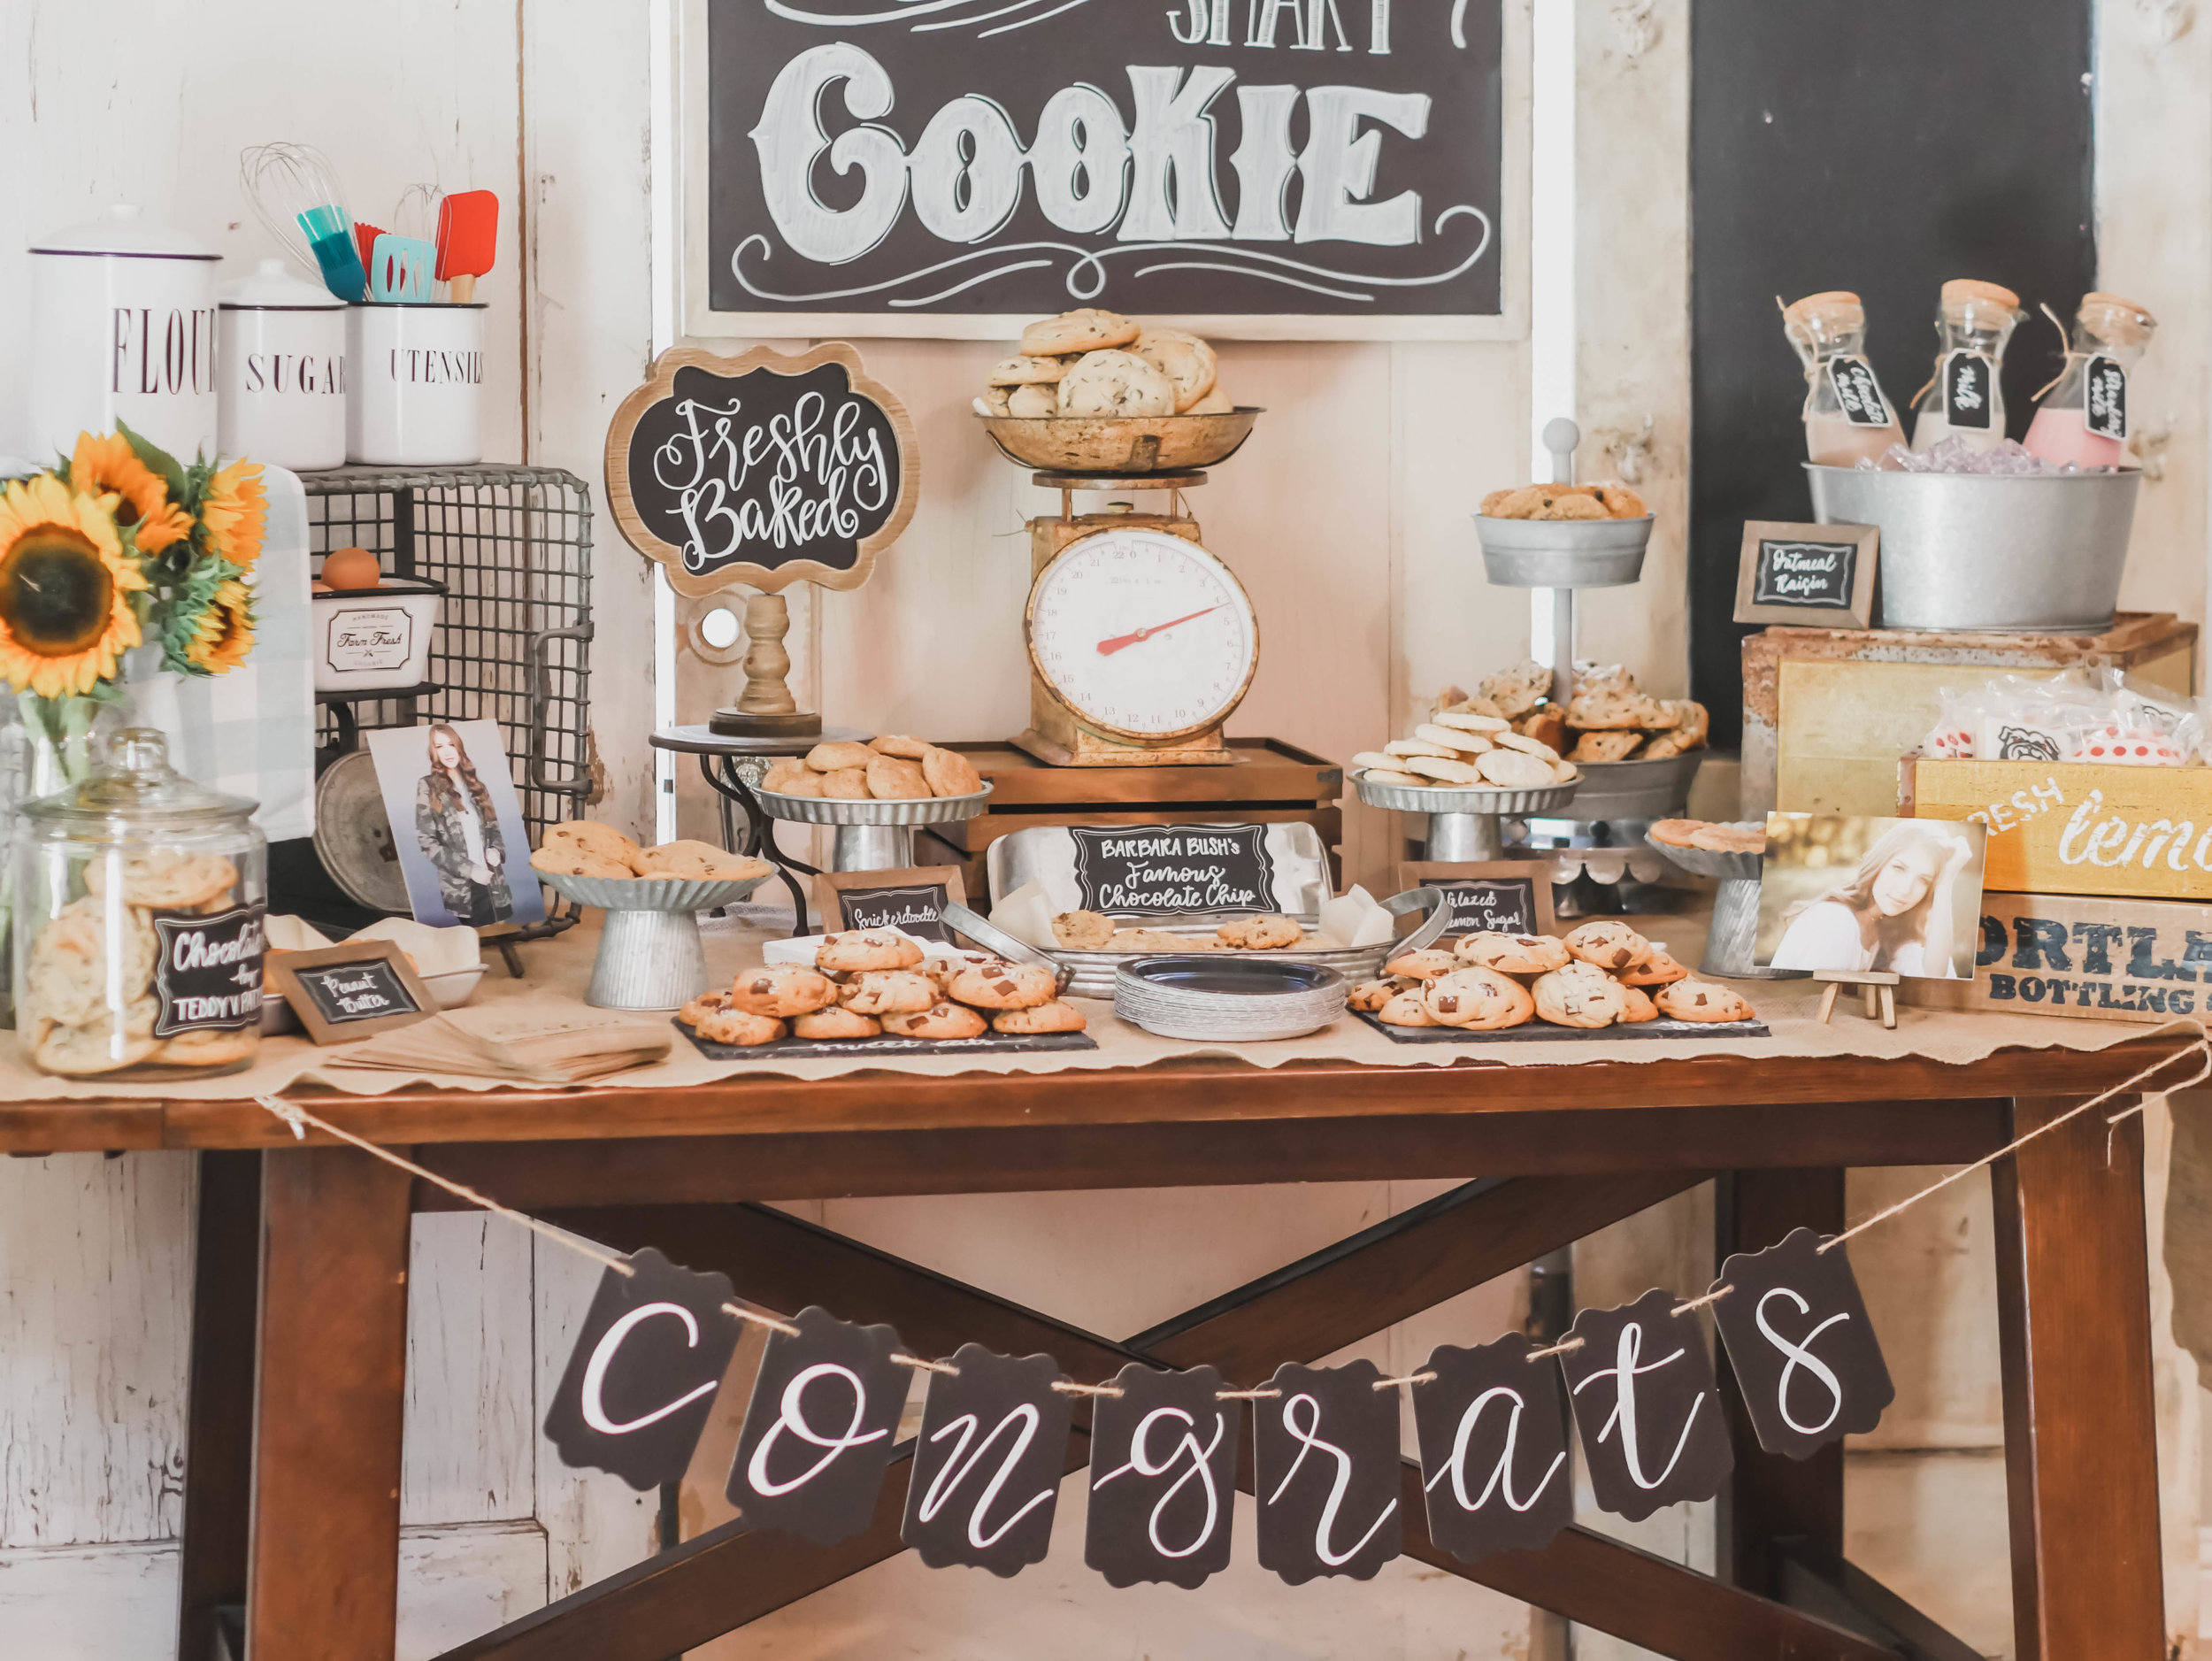 Check out this adorable and over-the-top graduation cookie bar for One Smart Cookies. Come see all the party details from this graduation party on Mint Event Design www.minteventdesign.com #graduationparty #graduationpartyideas #partyideas #rusticpartyideas #partyinspiration #dessertbar #desserttable #cookies